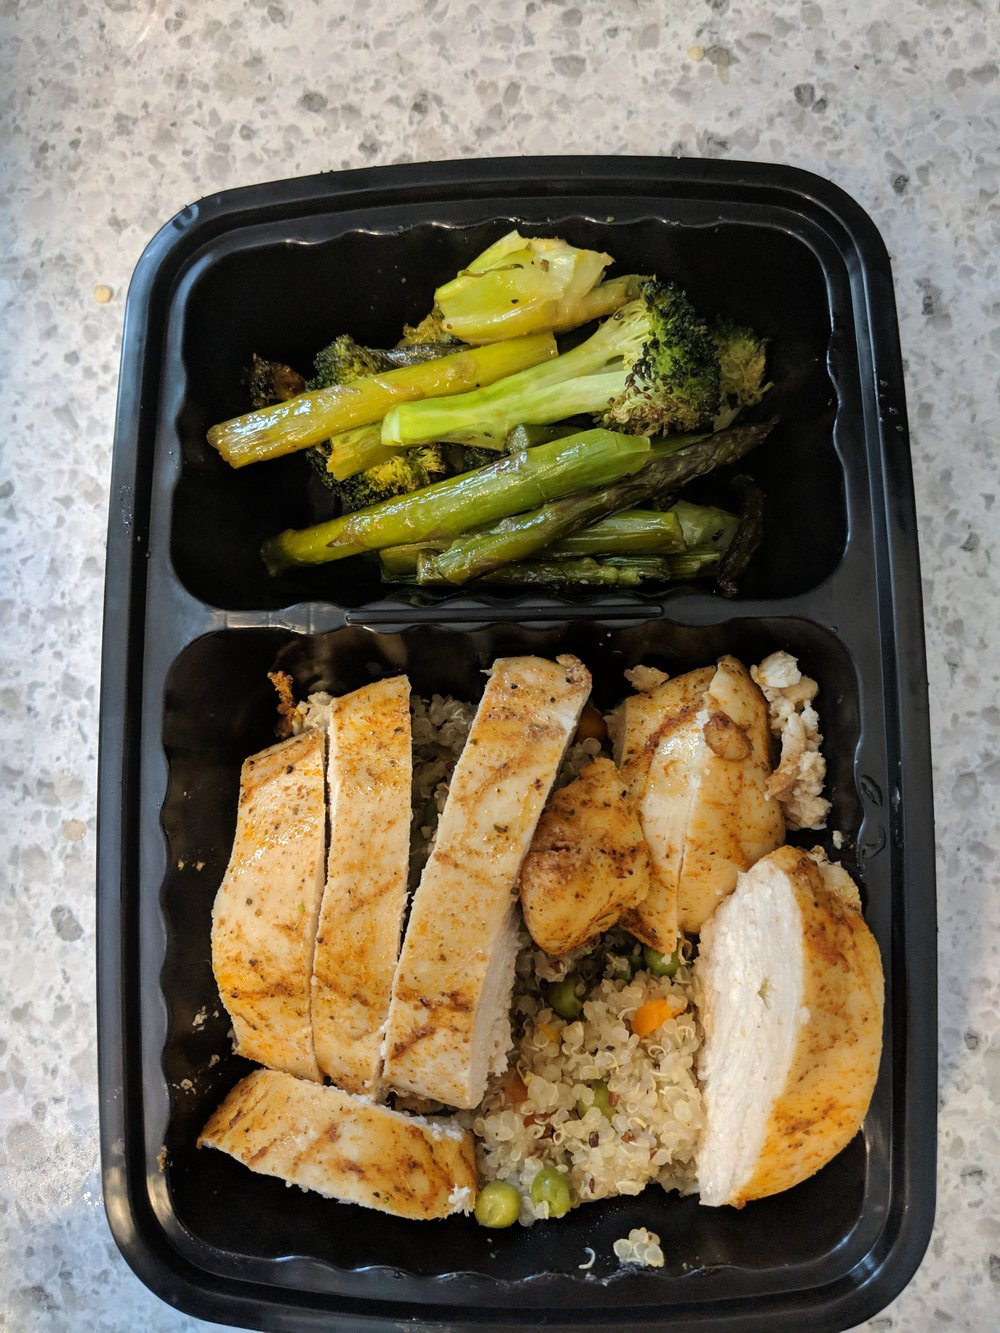 Individually-portioned spicy chicken and veggie quinoa meal with a side of roasted asparagus and broccoli